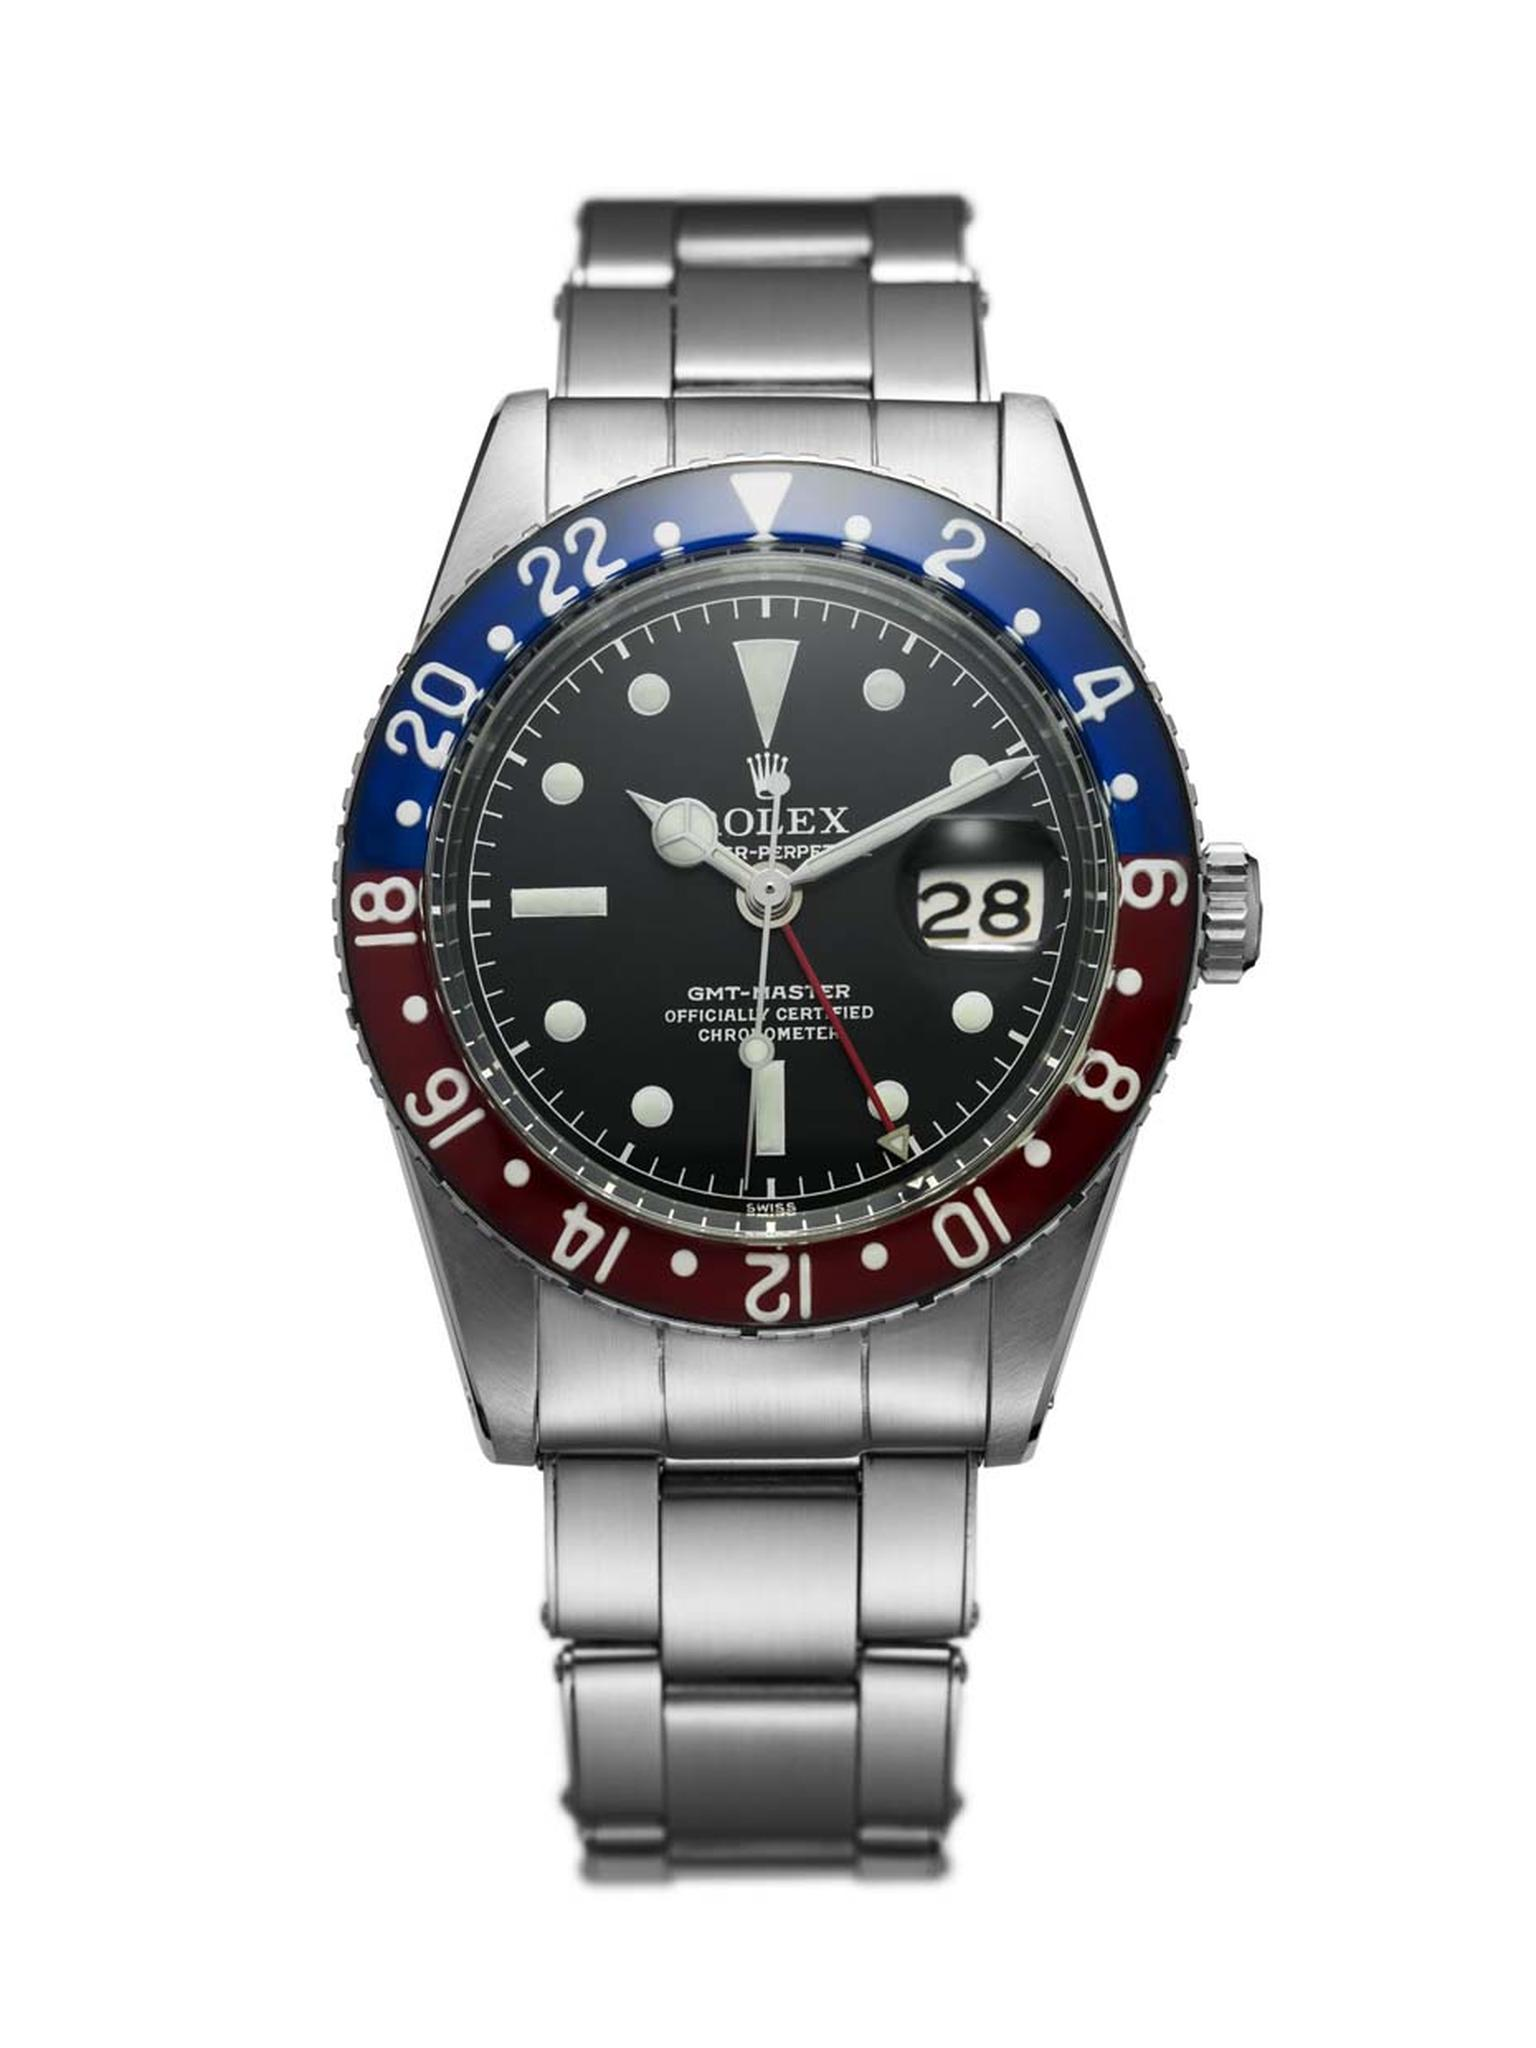 The Rolex GMT-Master watch from 1955 was specifically designed for Pan Am pilots who crossed multiple time zones. Also known as the Pepsi watch because of its red and blue rotating 24 hour bezel, the Rolex GMT-Master is one of Rolex' most sought-after wat